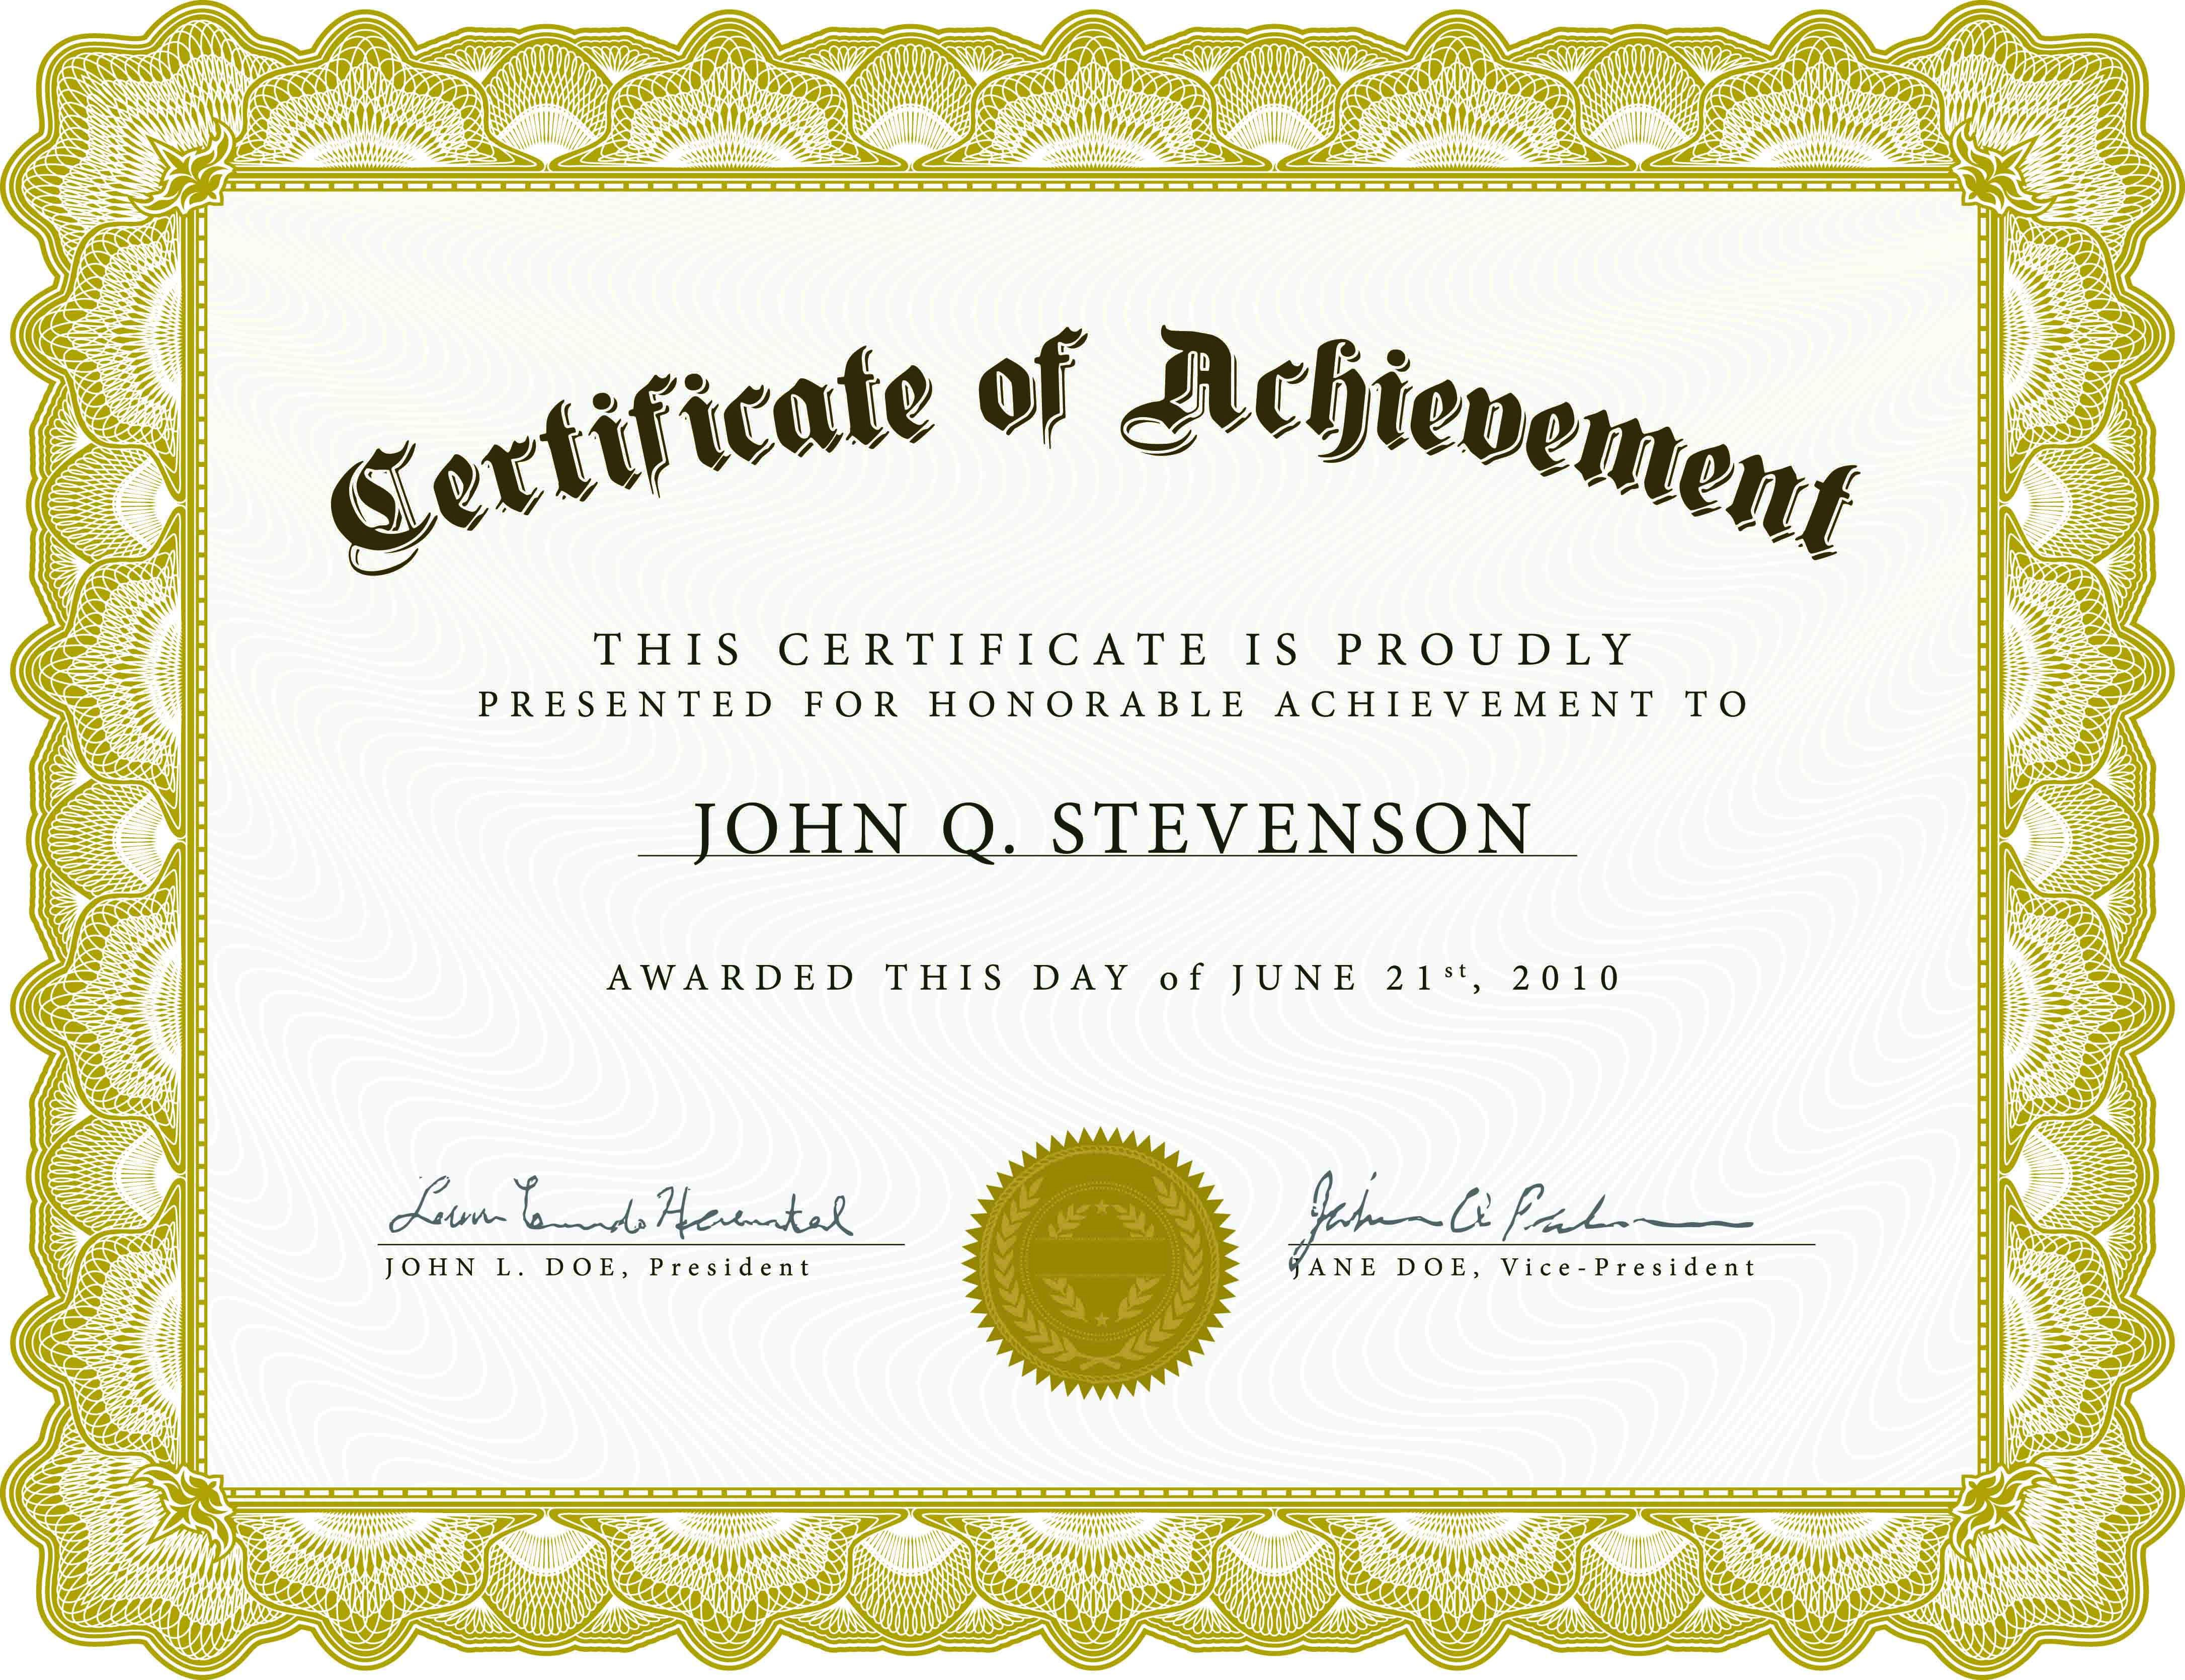 001 Staggering Free Template For Certificate Idea  Certificates Online Of Completion Attendance Printable ParticipationFull